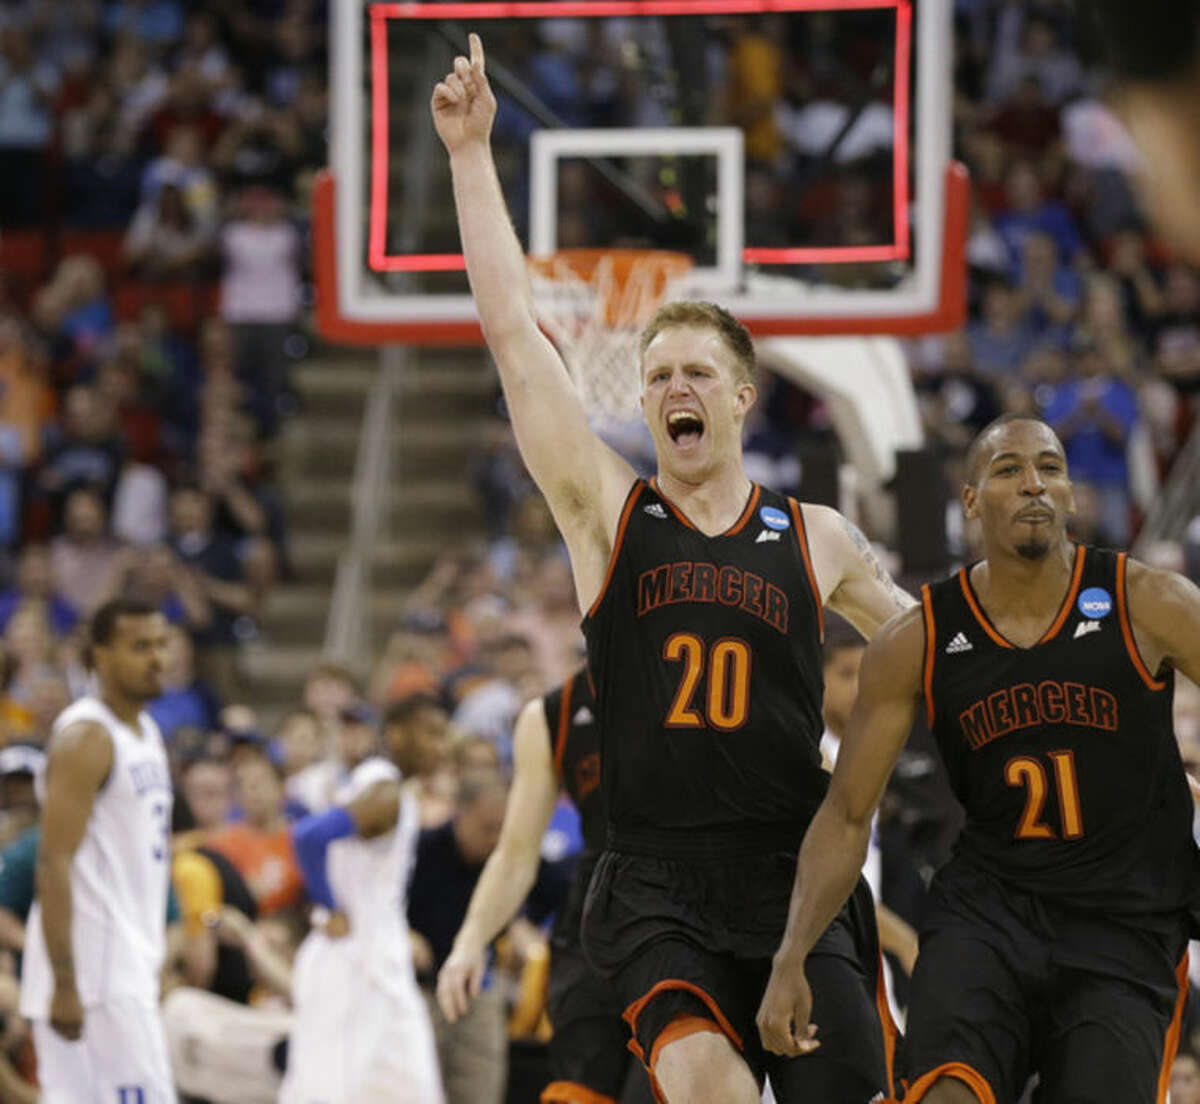 Mercer forward Jakob Gollon (20) and Mercer guard Langston Hall (21) celebrate after the second half of an NCAA college basketball second-round game against Duke, Friday, March 21, 2014, in Raleigh, N.C. Mercer won 78-71. (AP Photo/Gerry Broome)